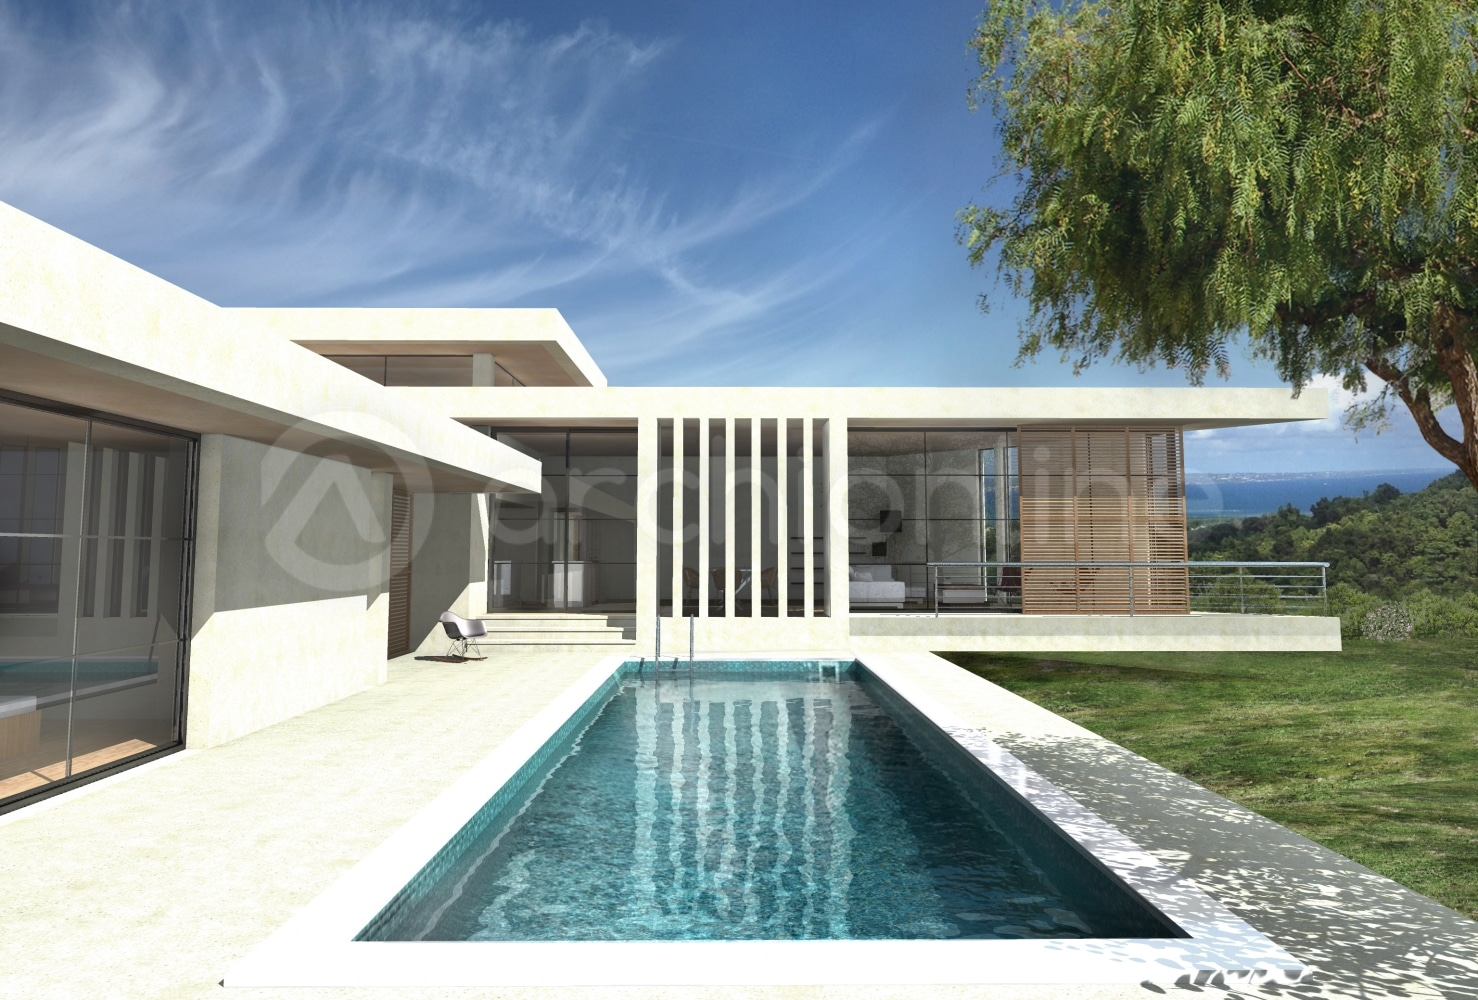 Maison moderne plain pied architecte for Plan maison architecte moderne